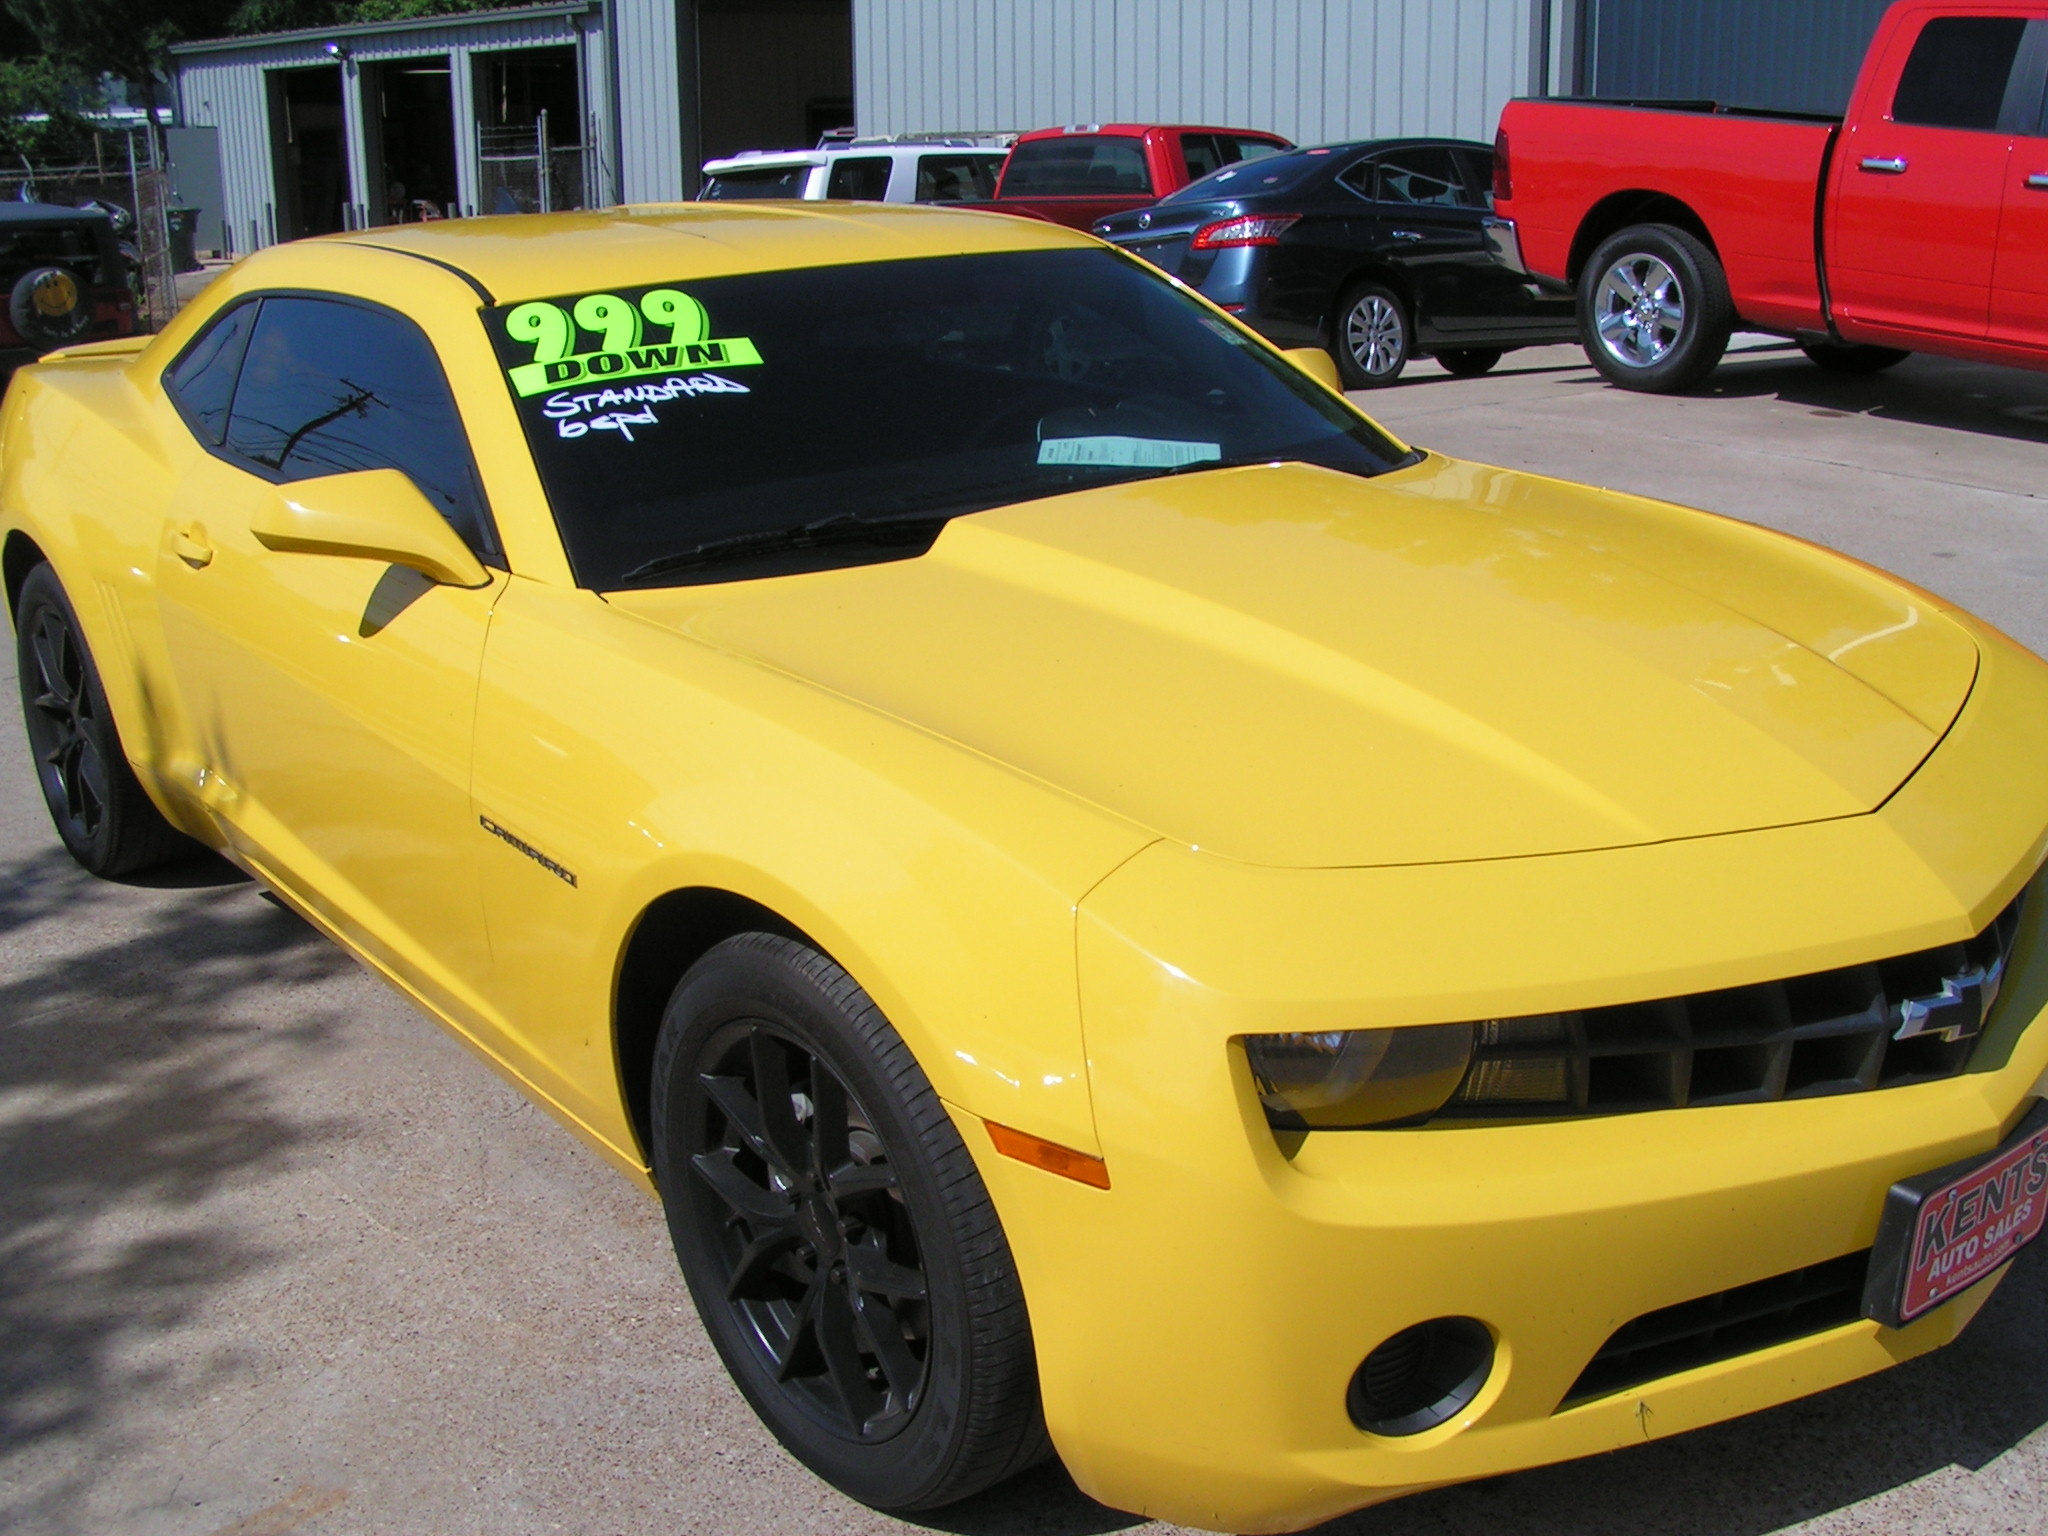 kents auto sales tyler texas used car dealer we finance all credit types